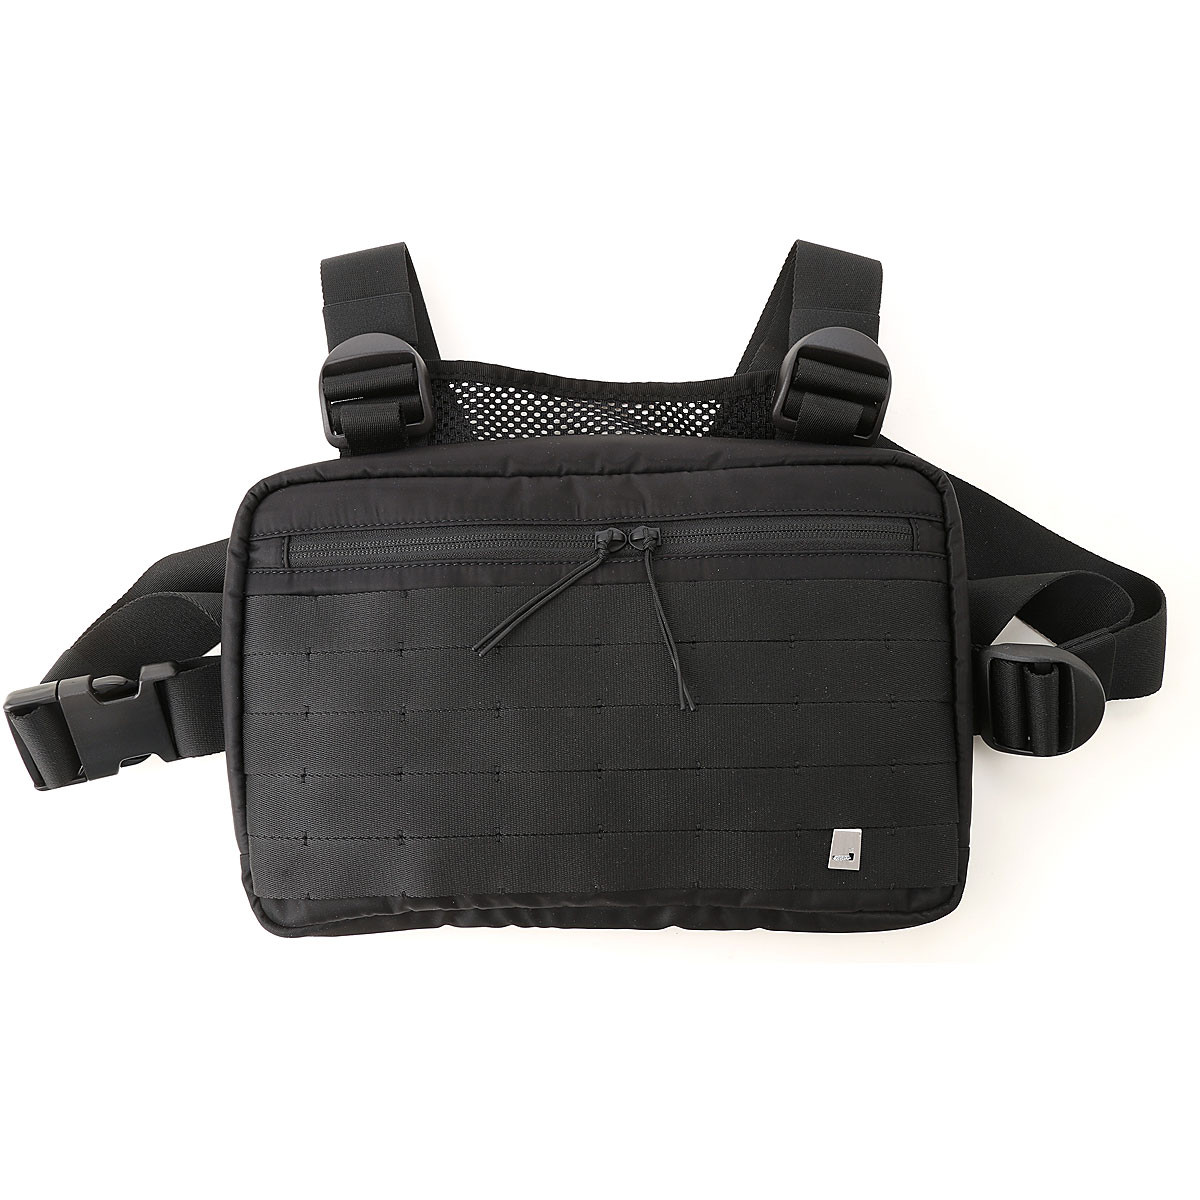 ALYX Briefcases, Black, Nylon, 2017